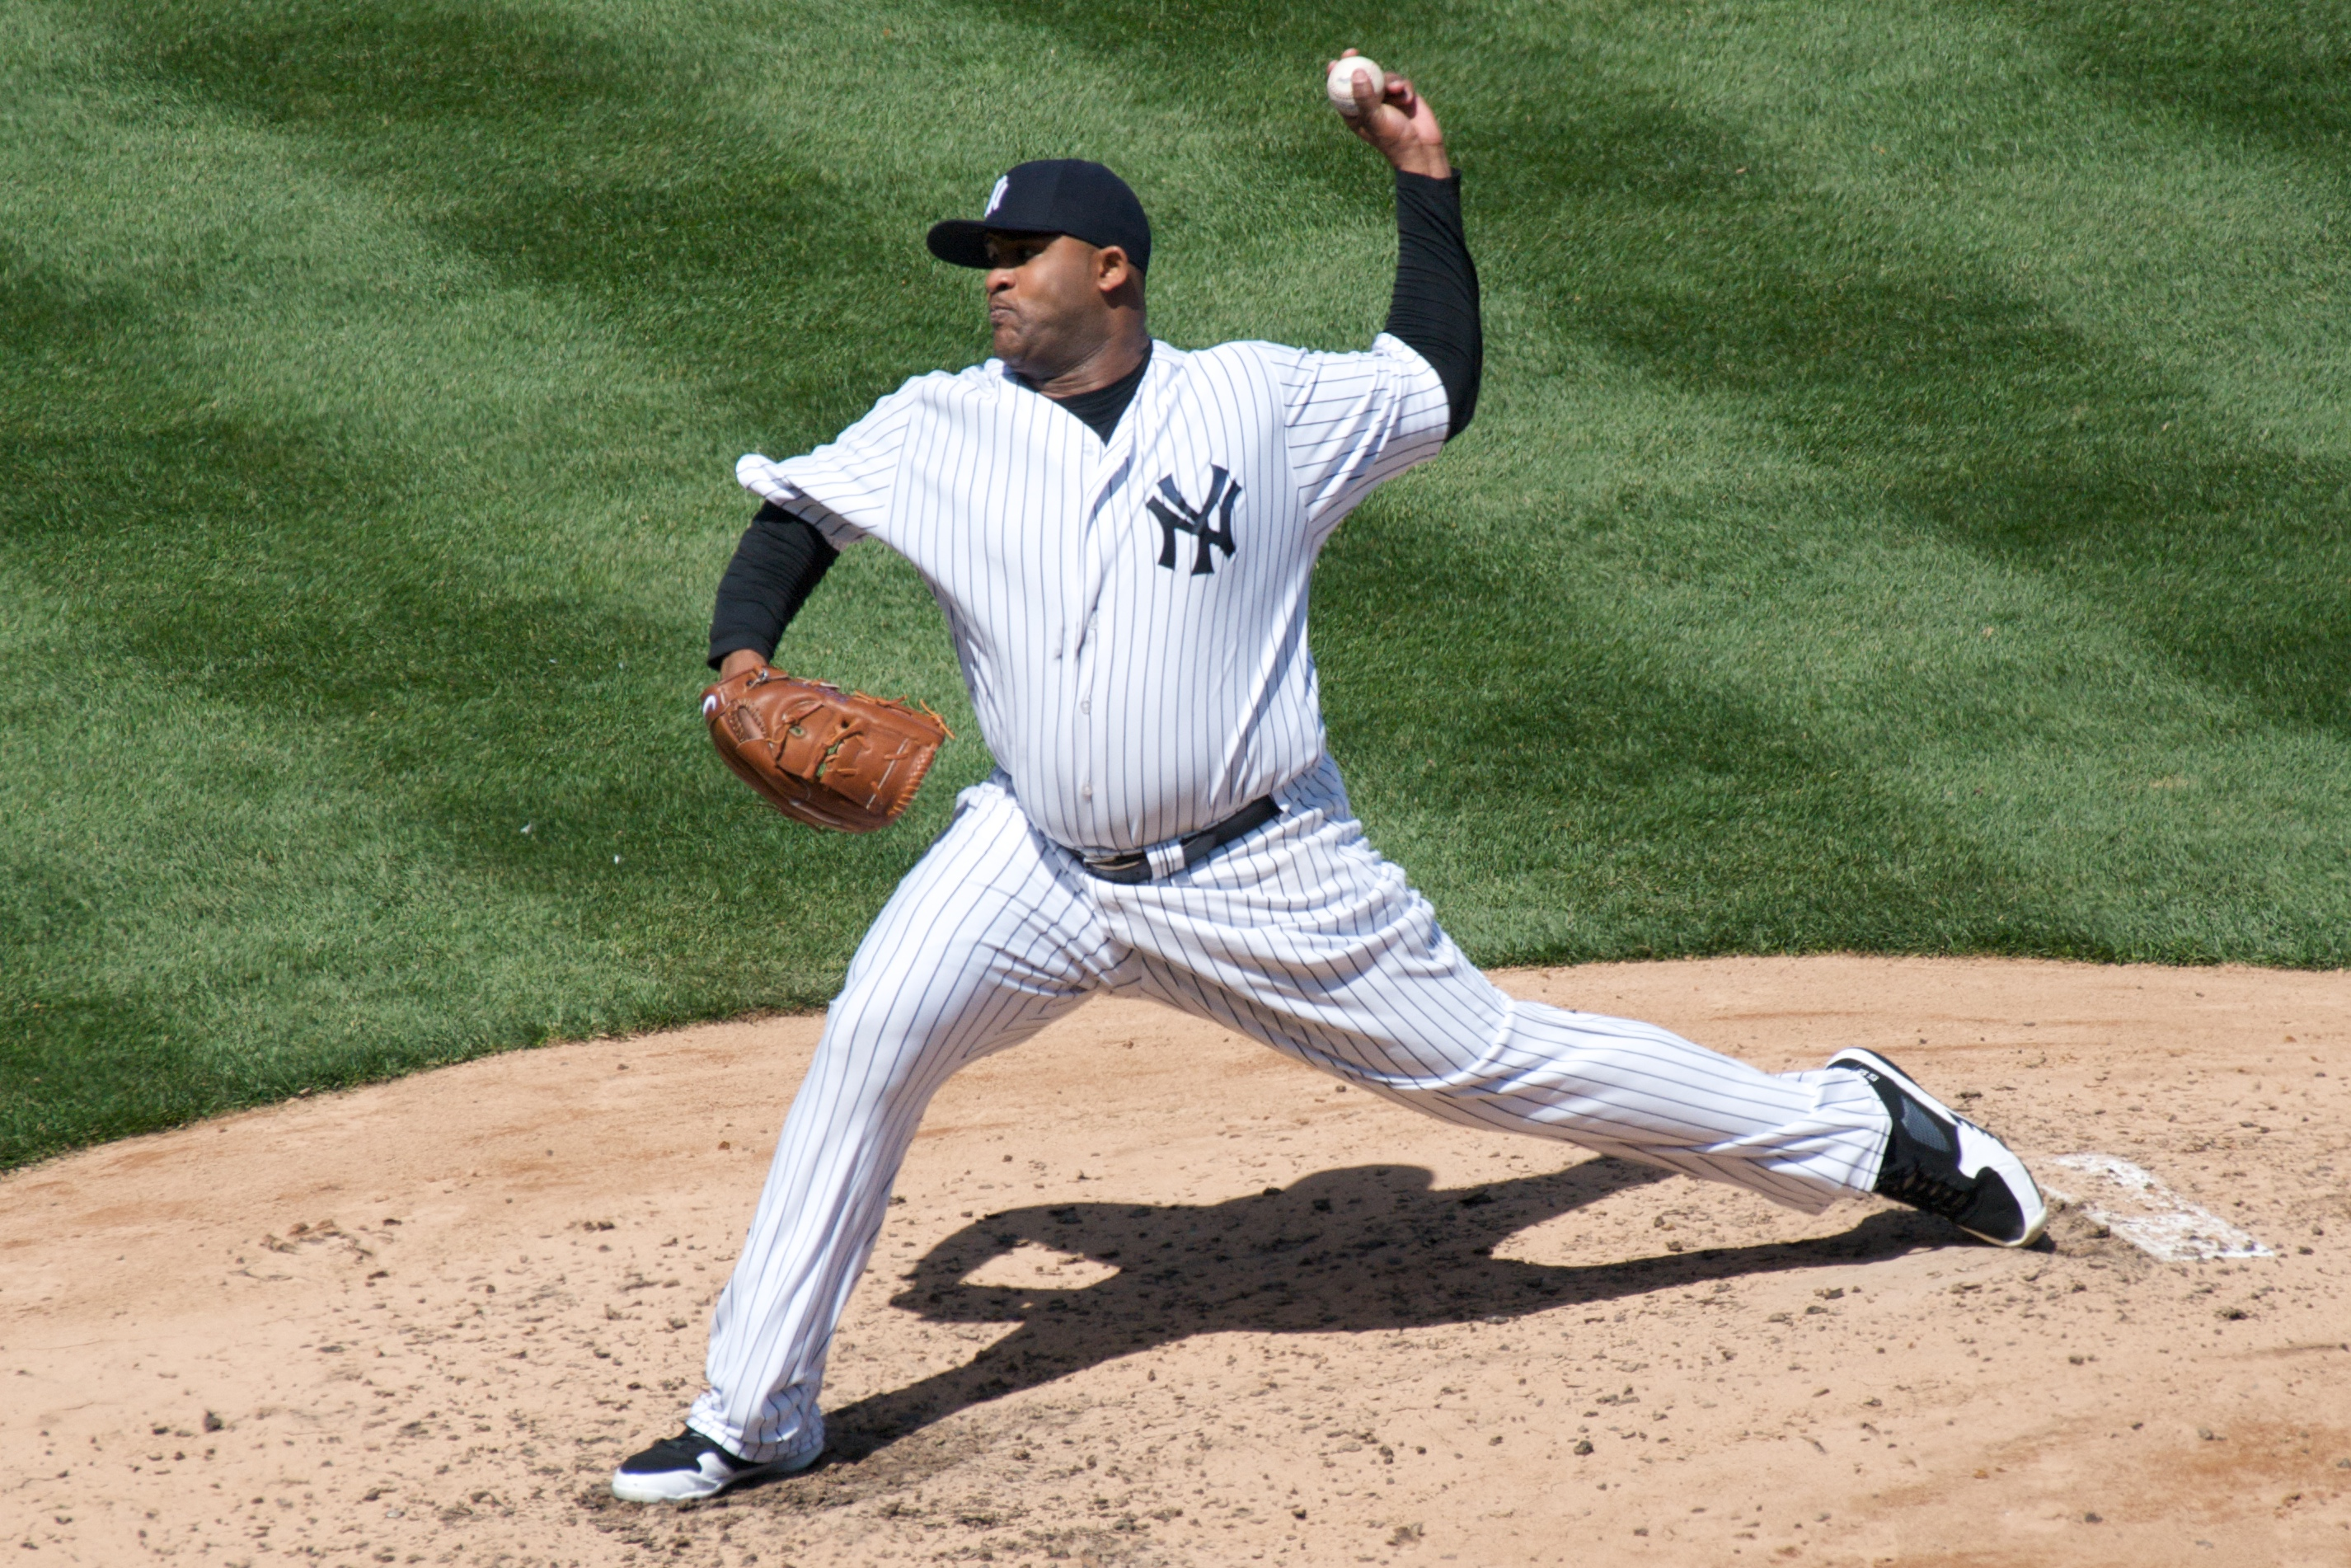 C.C. Sabathia will shoot for another solid start since his return from the DL